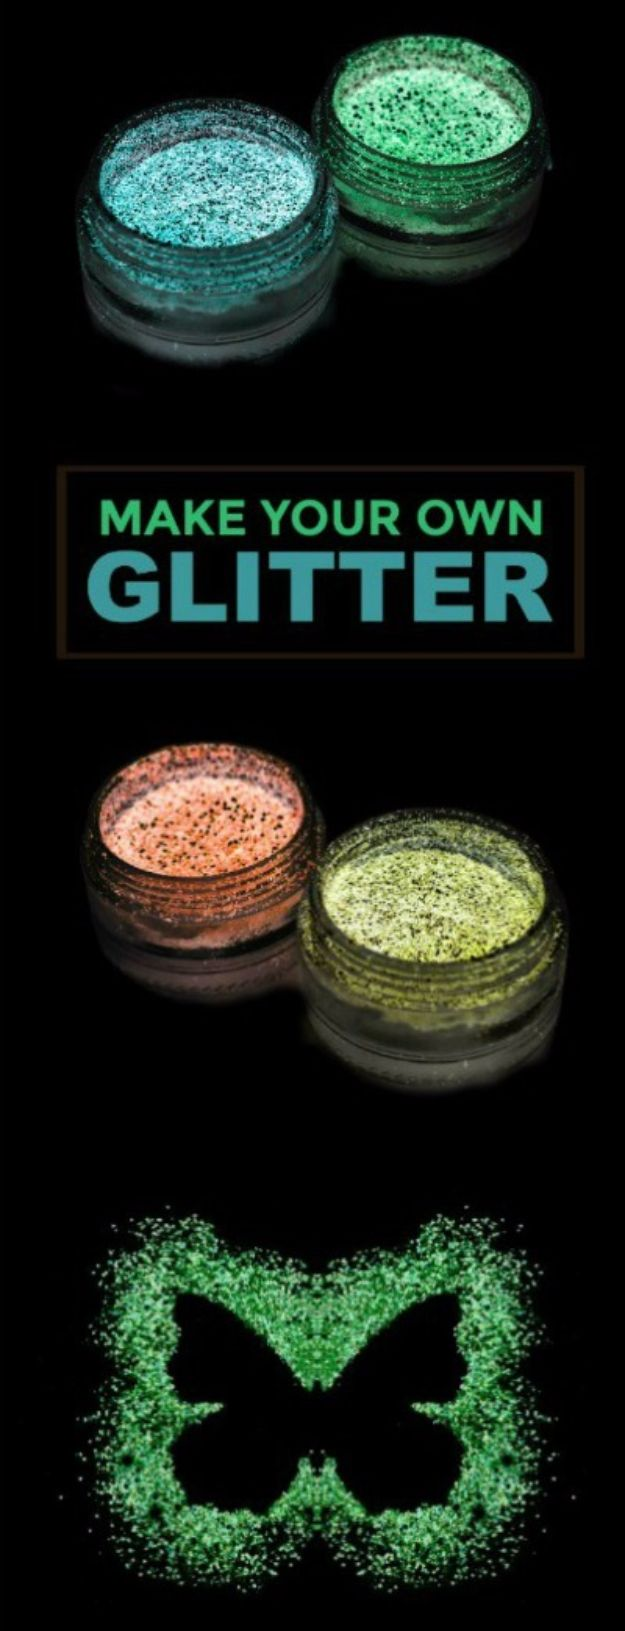 DIY Ideas WIth Glitter - Glow-in-the-Dark Glitter - Easy Crafts and Projects for Decoration, Gifts, and Bedroom Decor - How To Make Ombre, Mod Podge and Glitter Mason Jar Gift Ideas For Teens - Easy Clothes and Makeup Crafts For Teenagers http://diyprojectsforteens.com/glitter-crafts-ideas